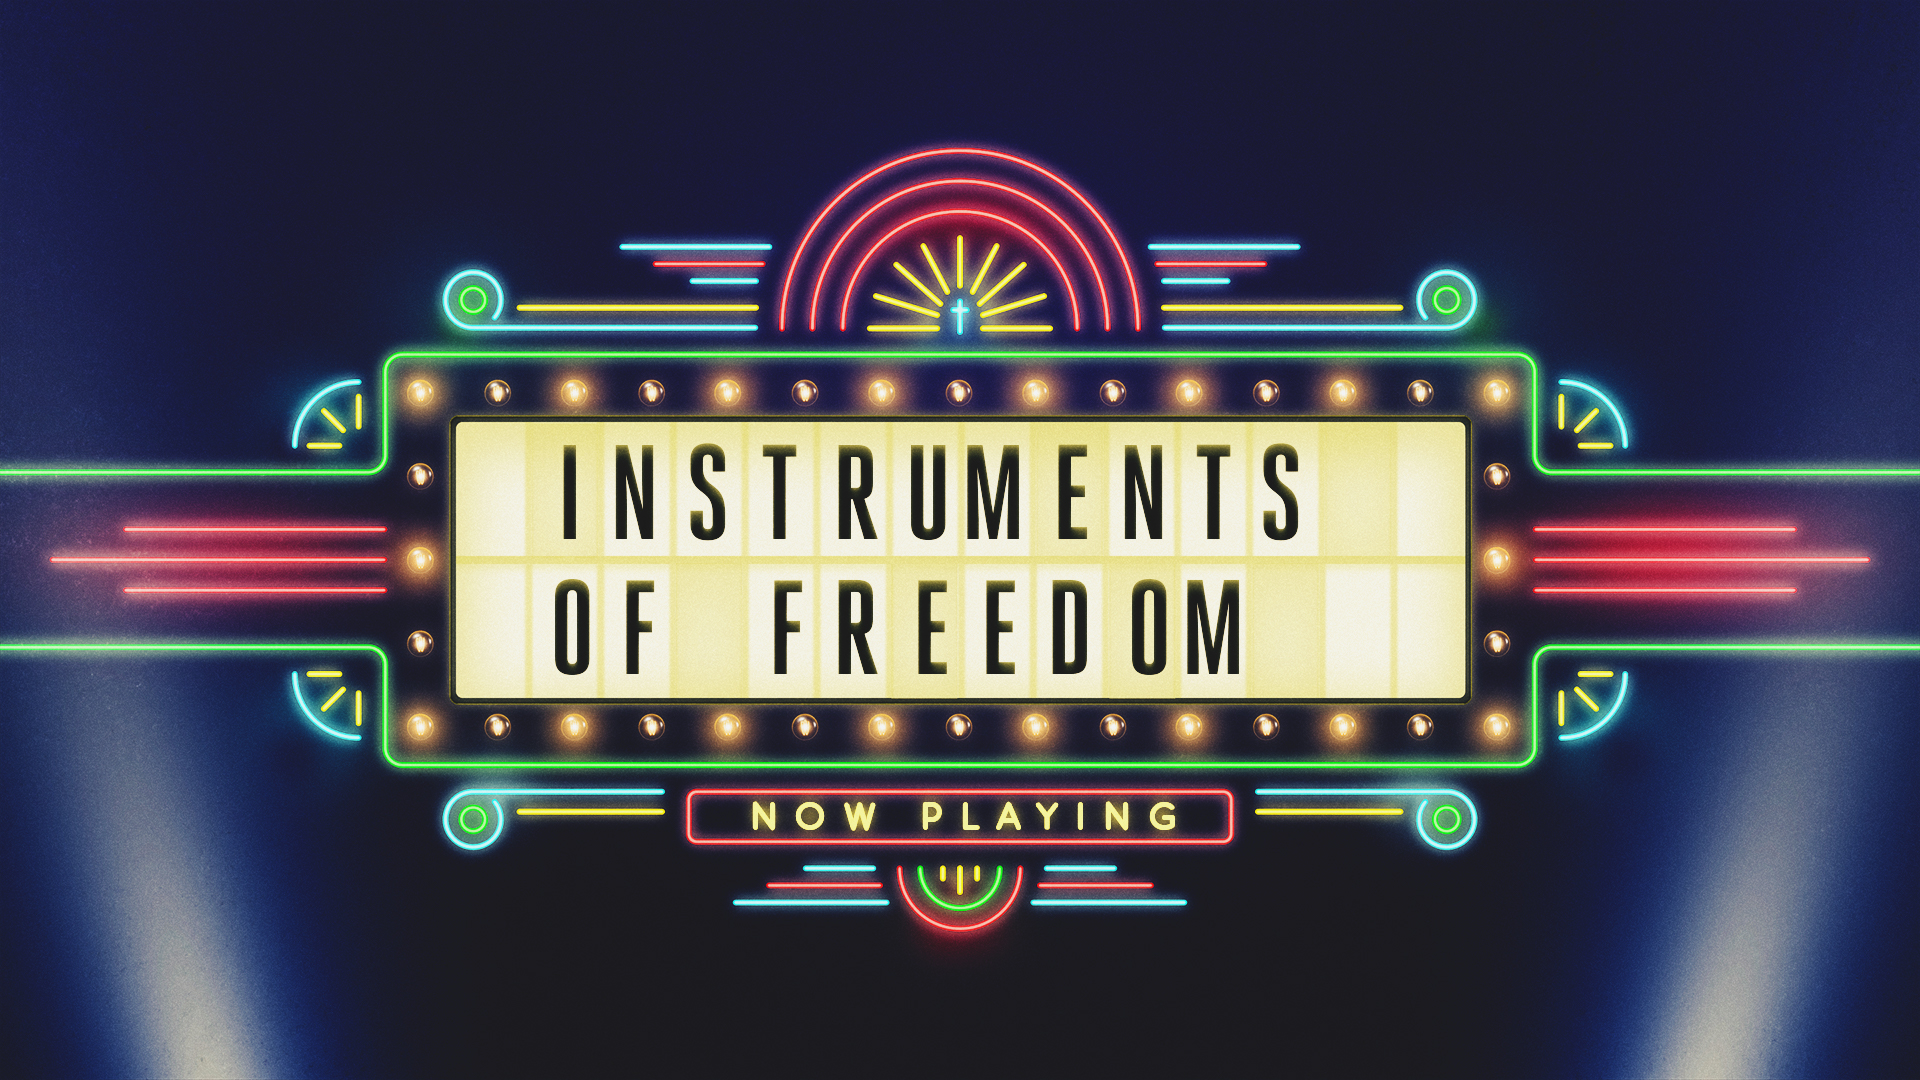 Instruments of Freedom